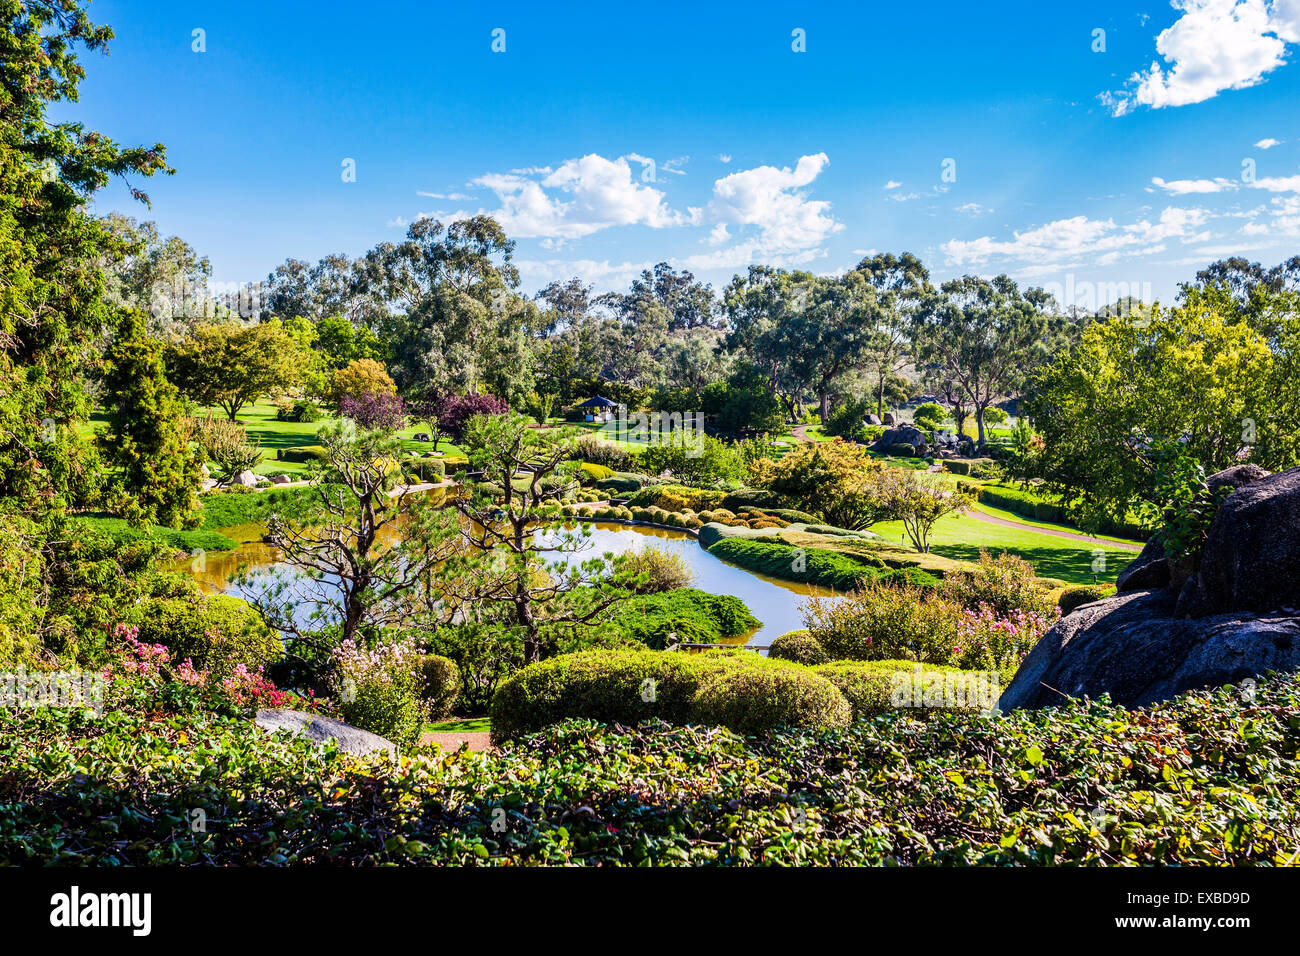 Australia, New South Wales, Central West Region, Cowra Japanese Garden - Stock Image